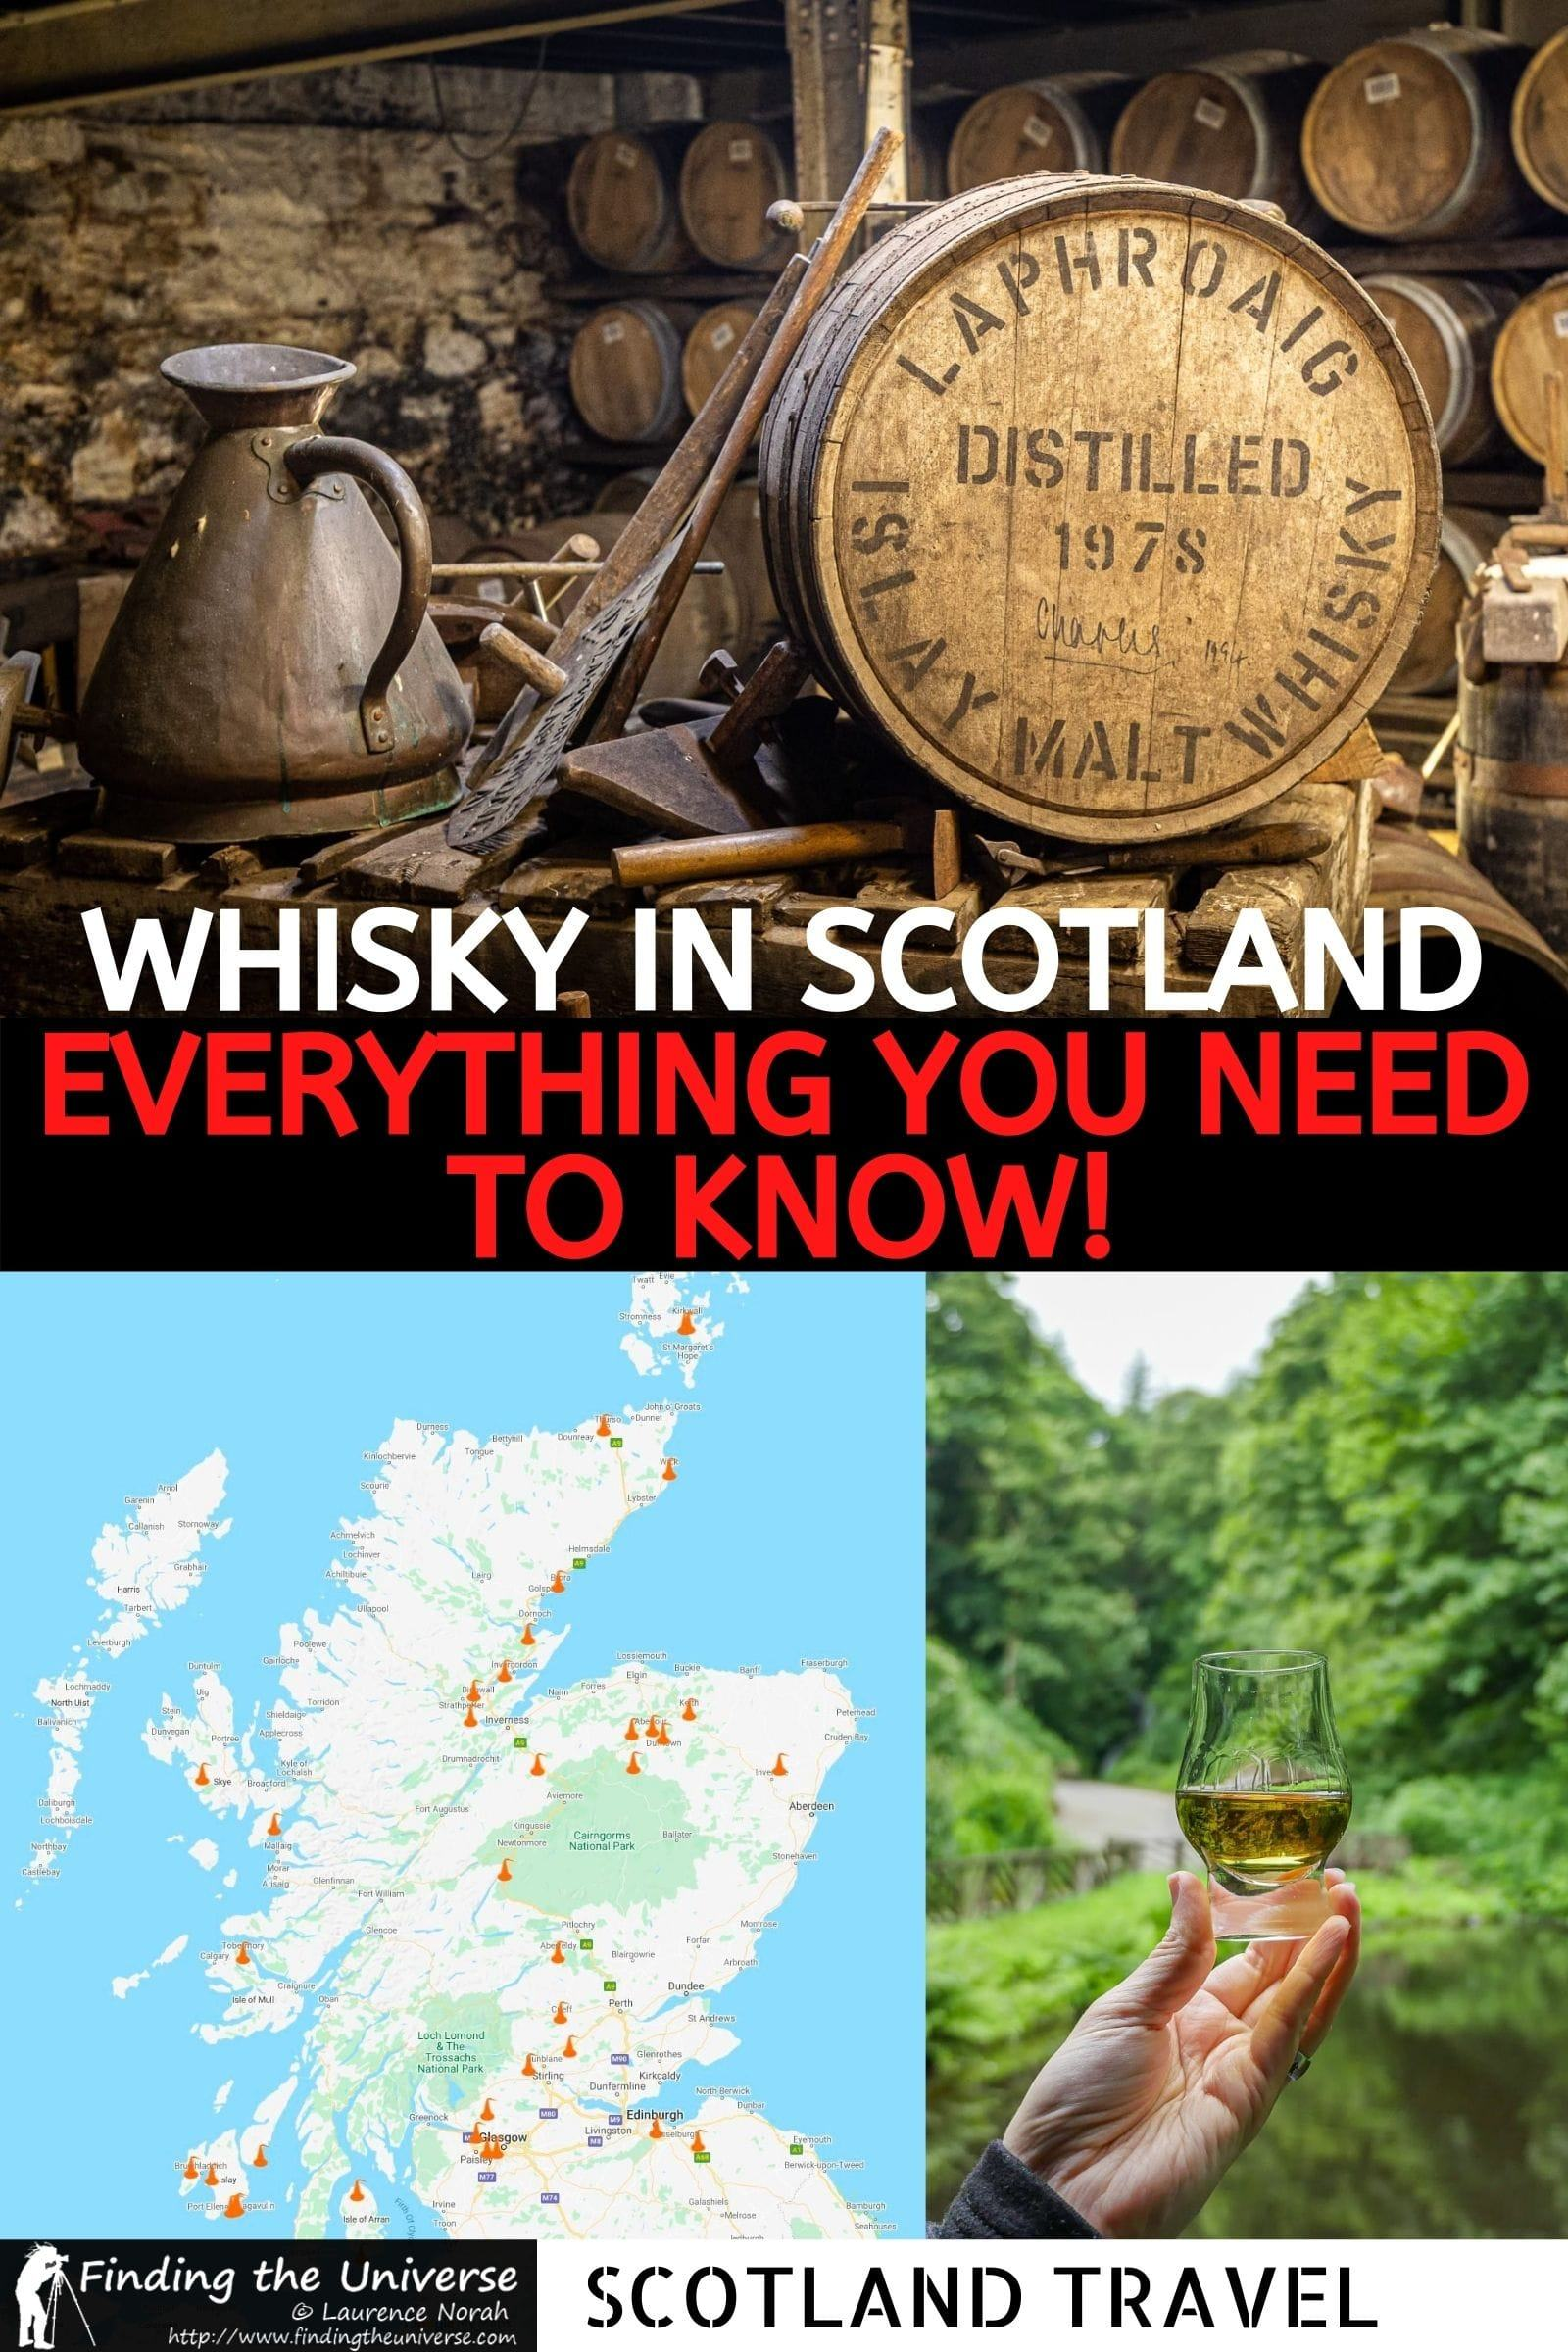 A detailed guide to whisky distilleries in Scotland. How whisky is made, the best whisky distilleries you can visit, and distillery tours.